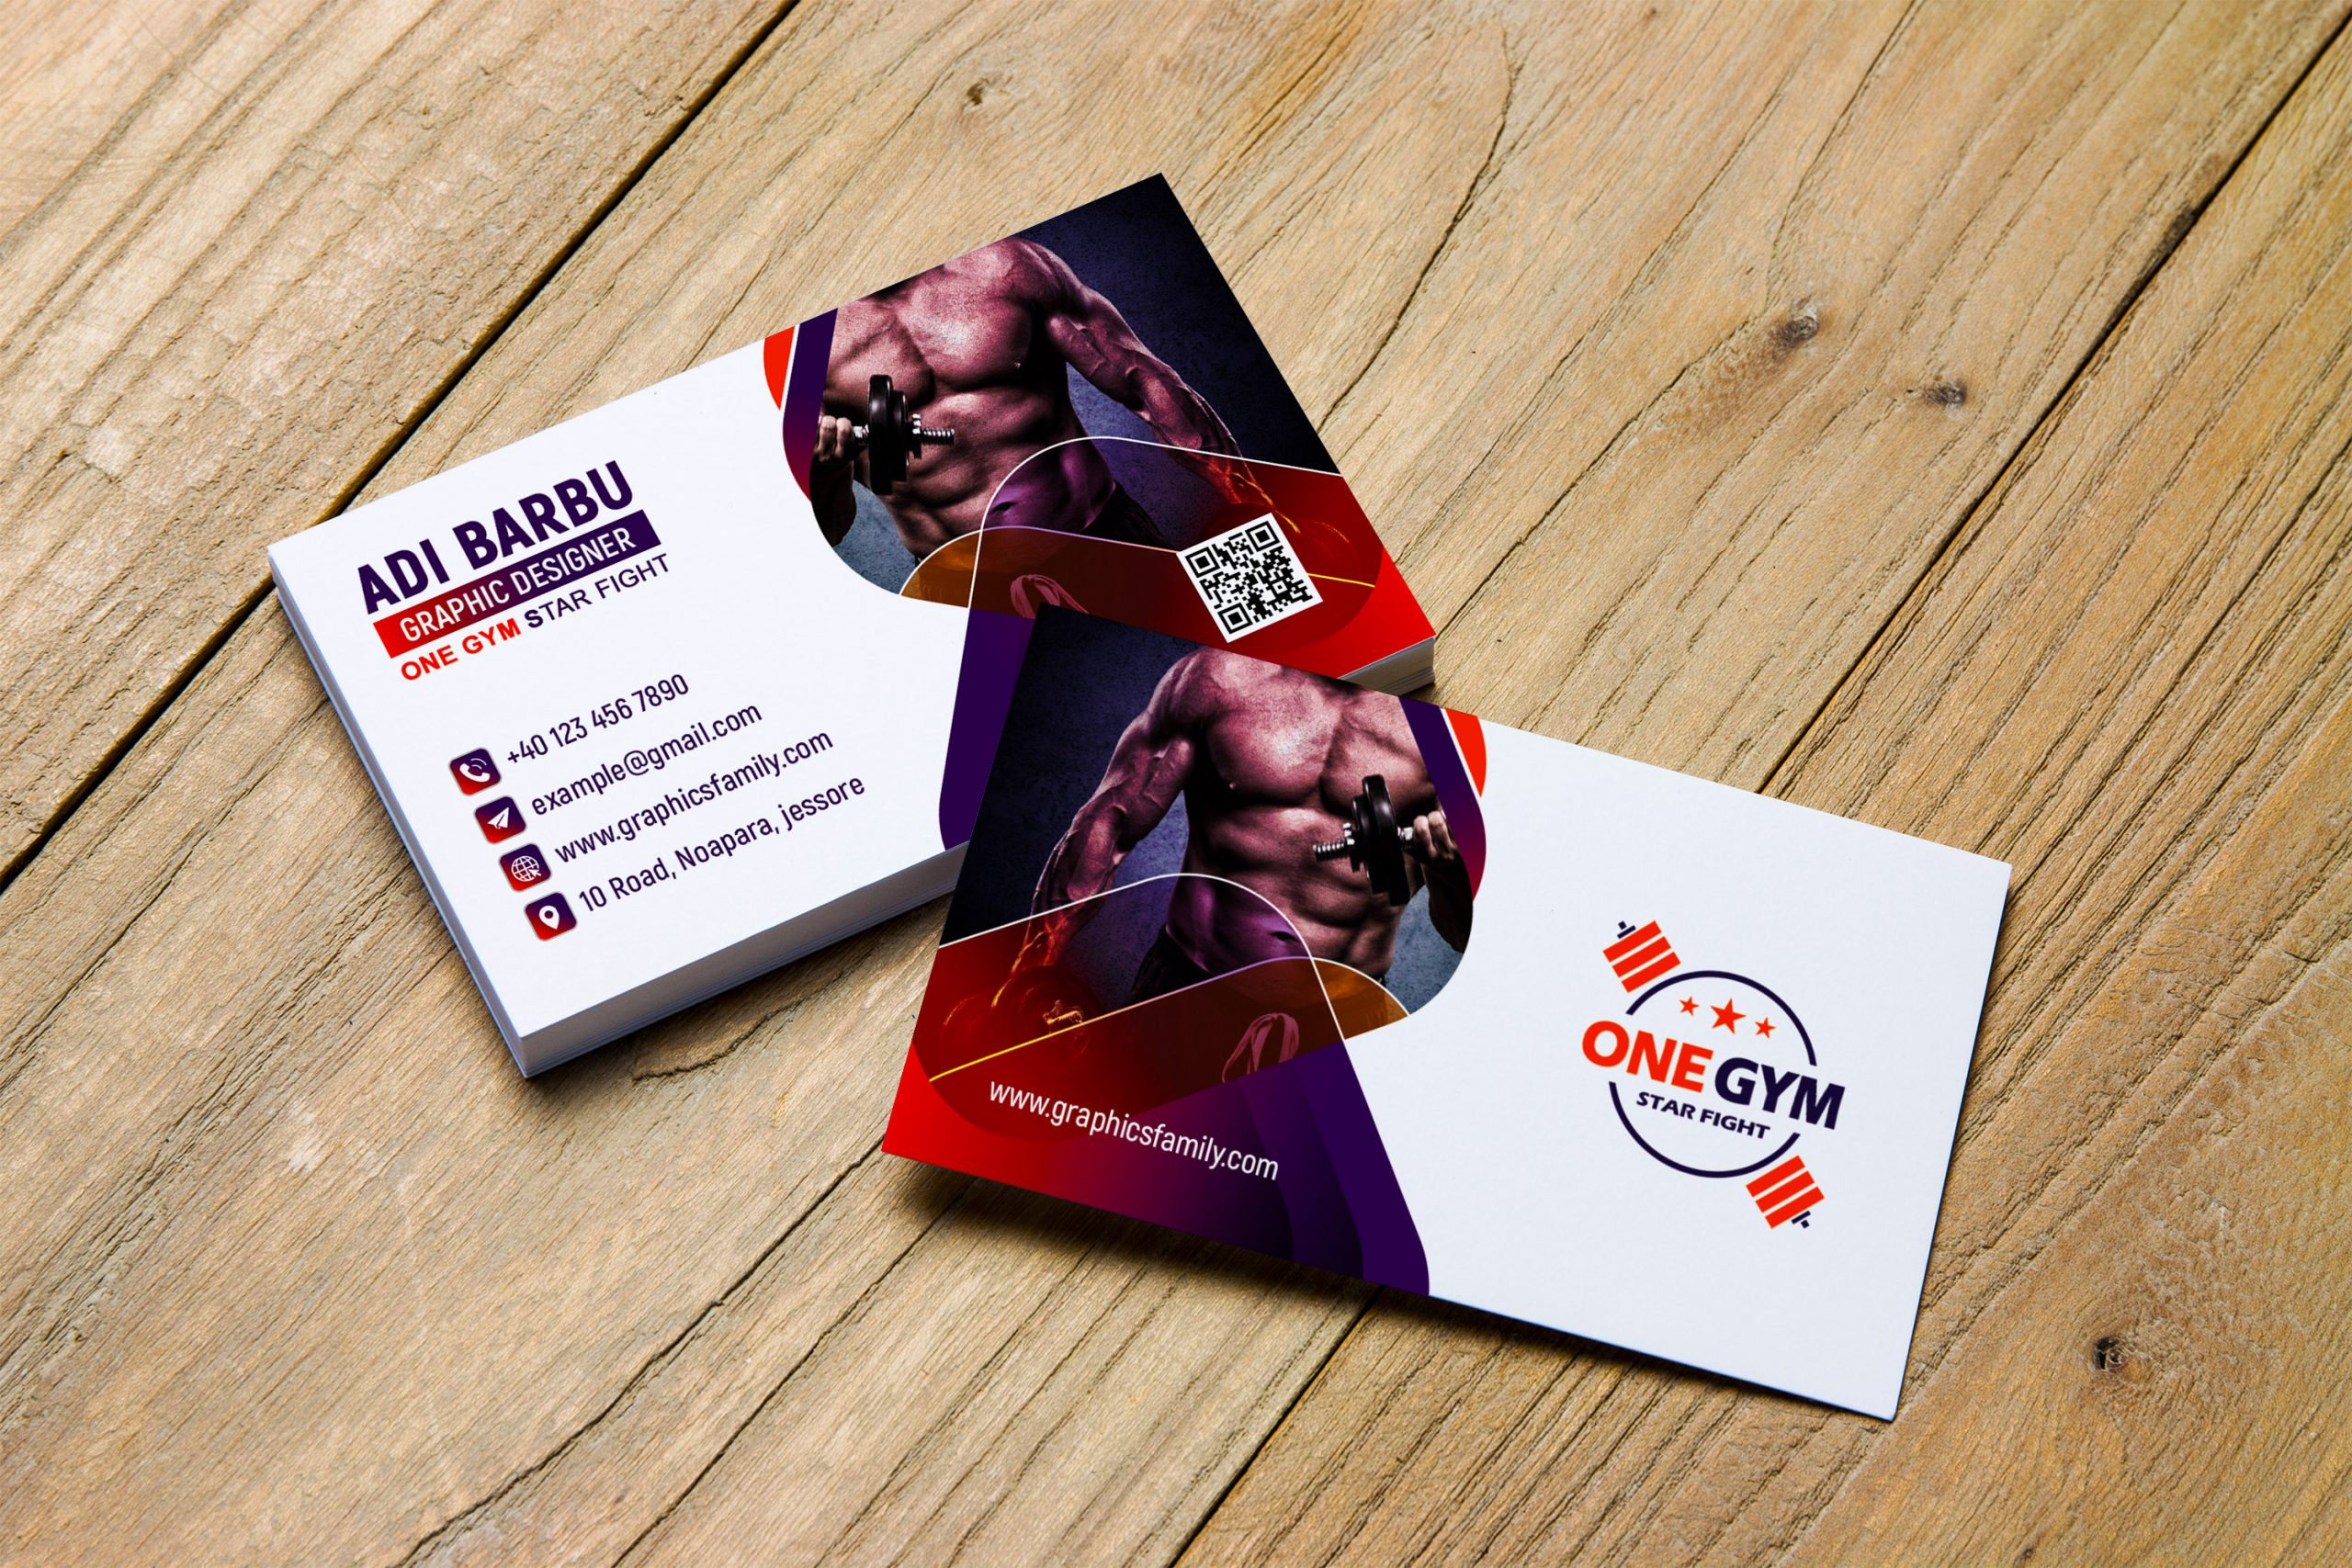 Free Download Modern Fitness Personal Trainer with Photo Business Card Design